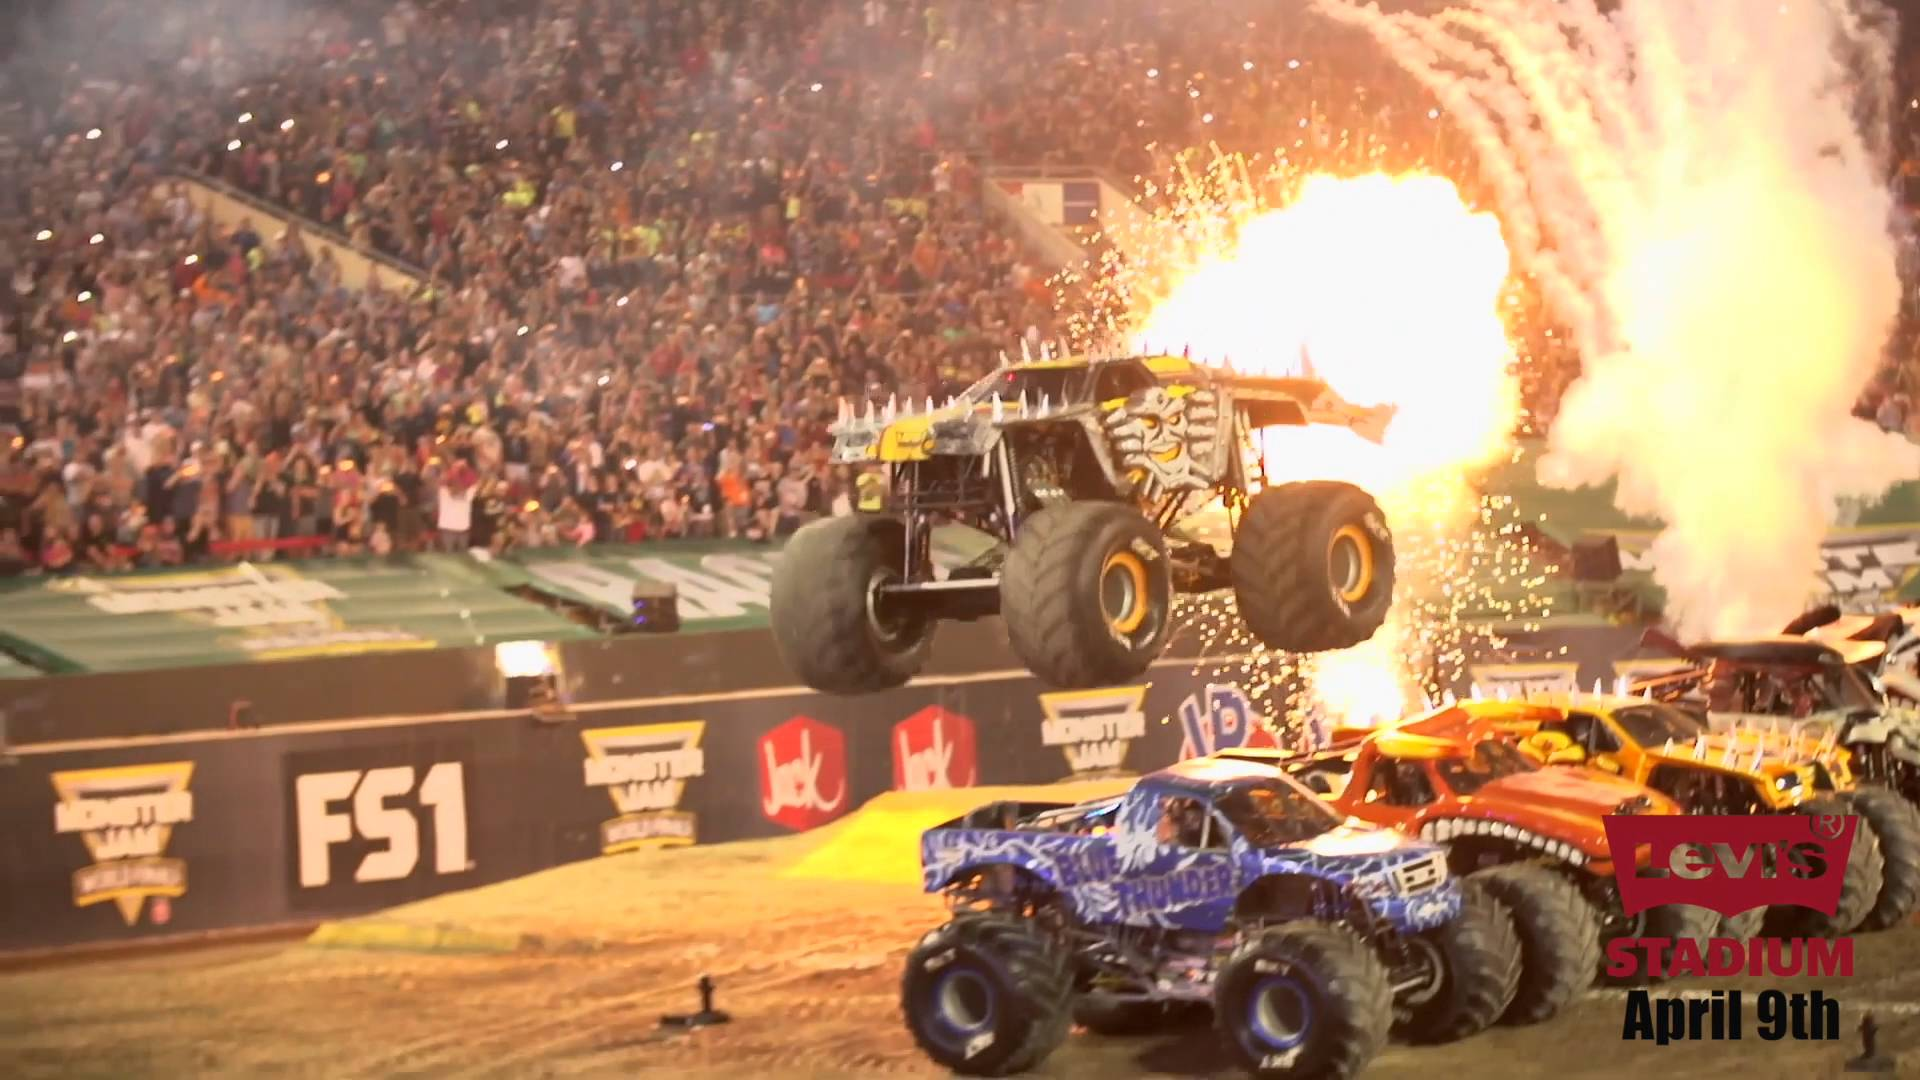 Max-D to Attempt To Jump SIX Monster Jam Trucks in Santa Clara ...